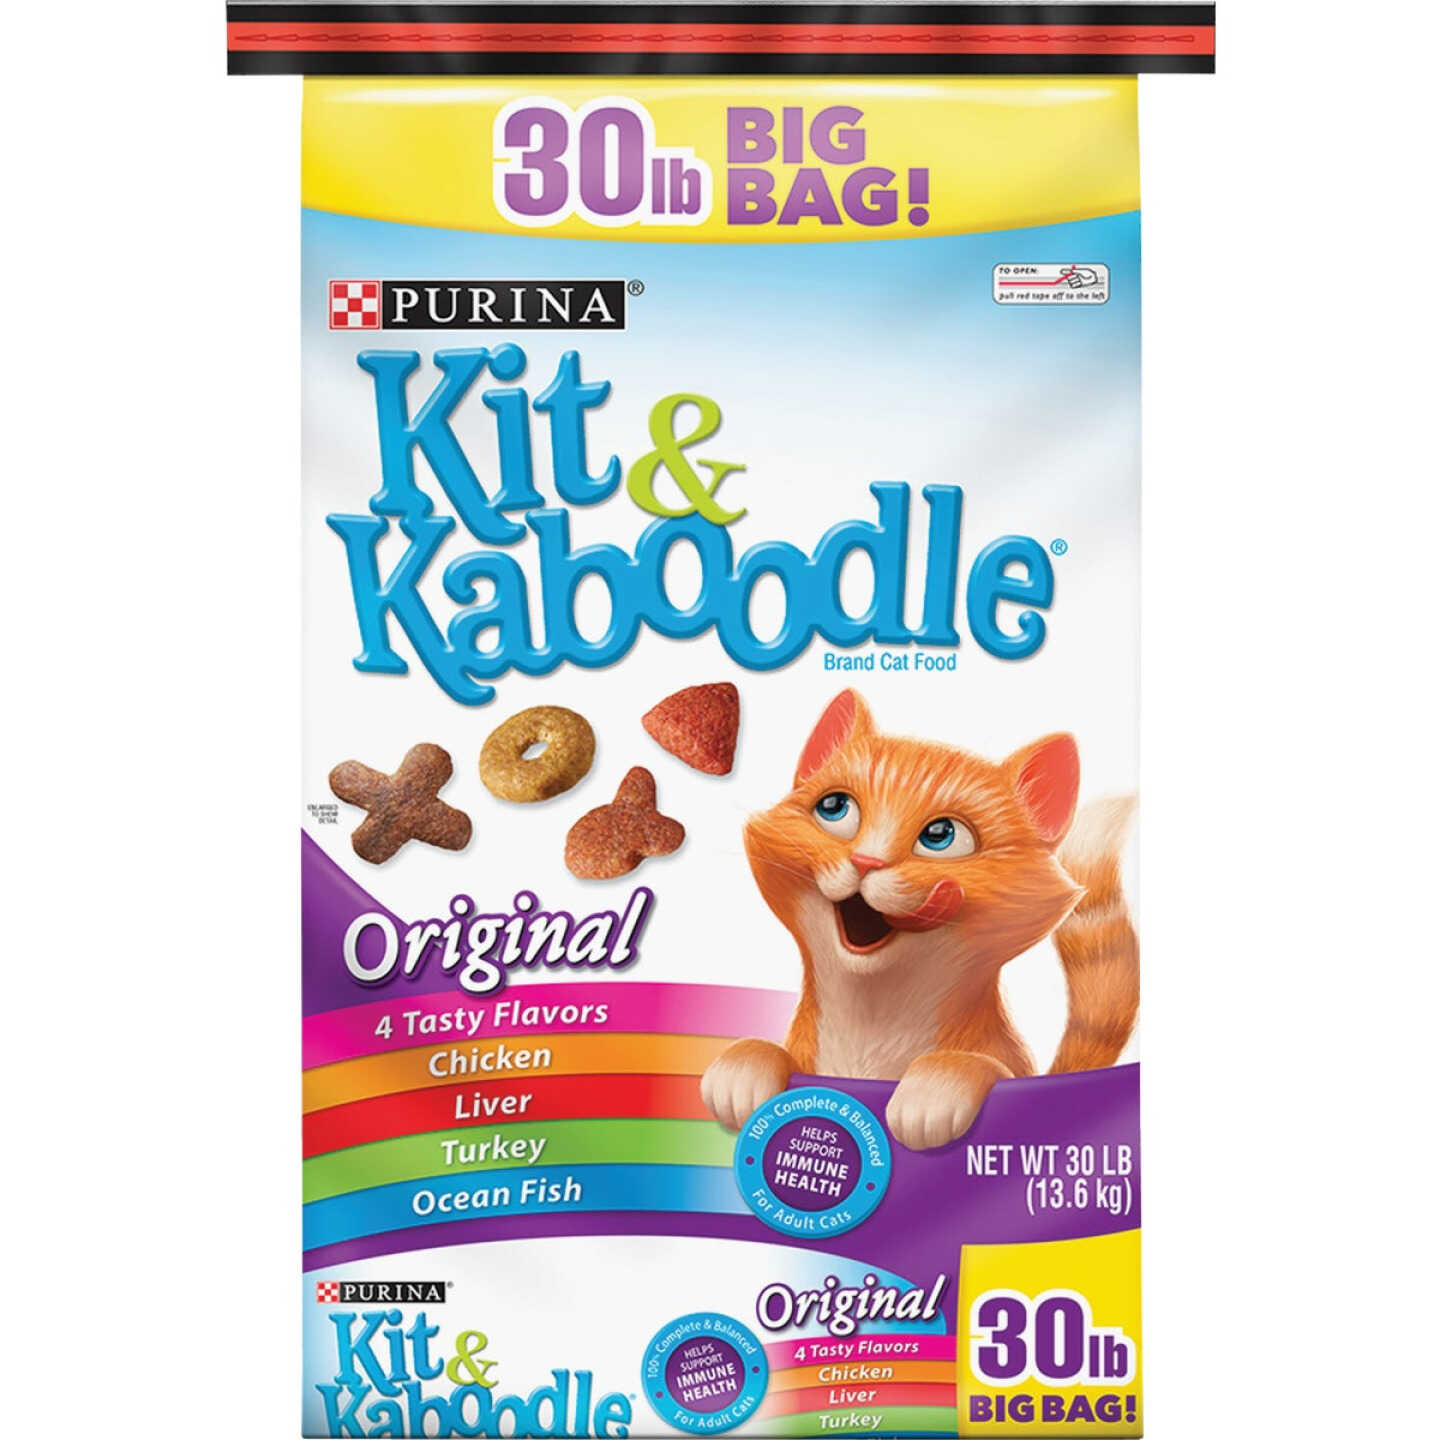 Purina Kit & Kaboodle 30 Lb. Chicken, Liver, Turkey, & Fish Flavor Adult Dry Cat Food Image 1